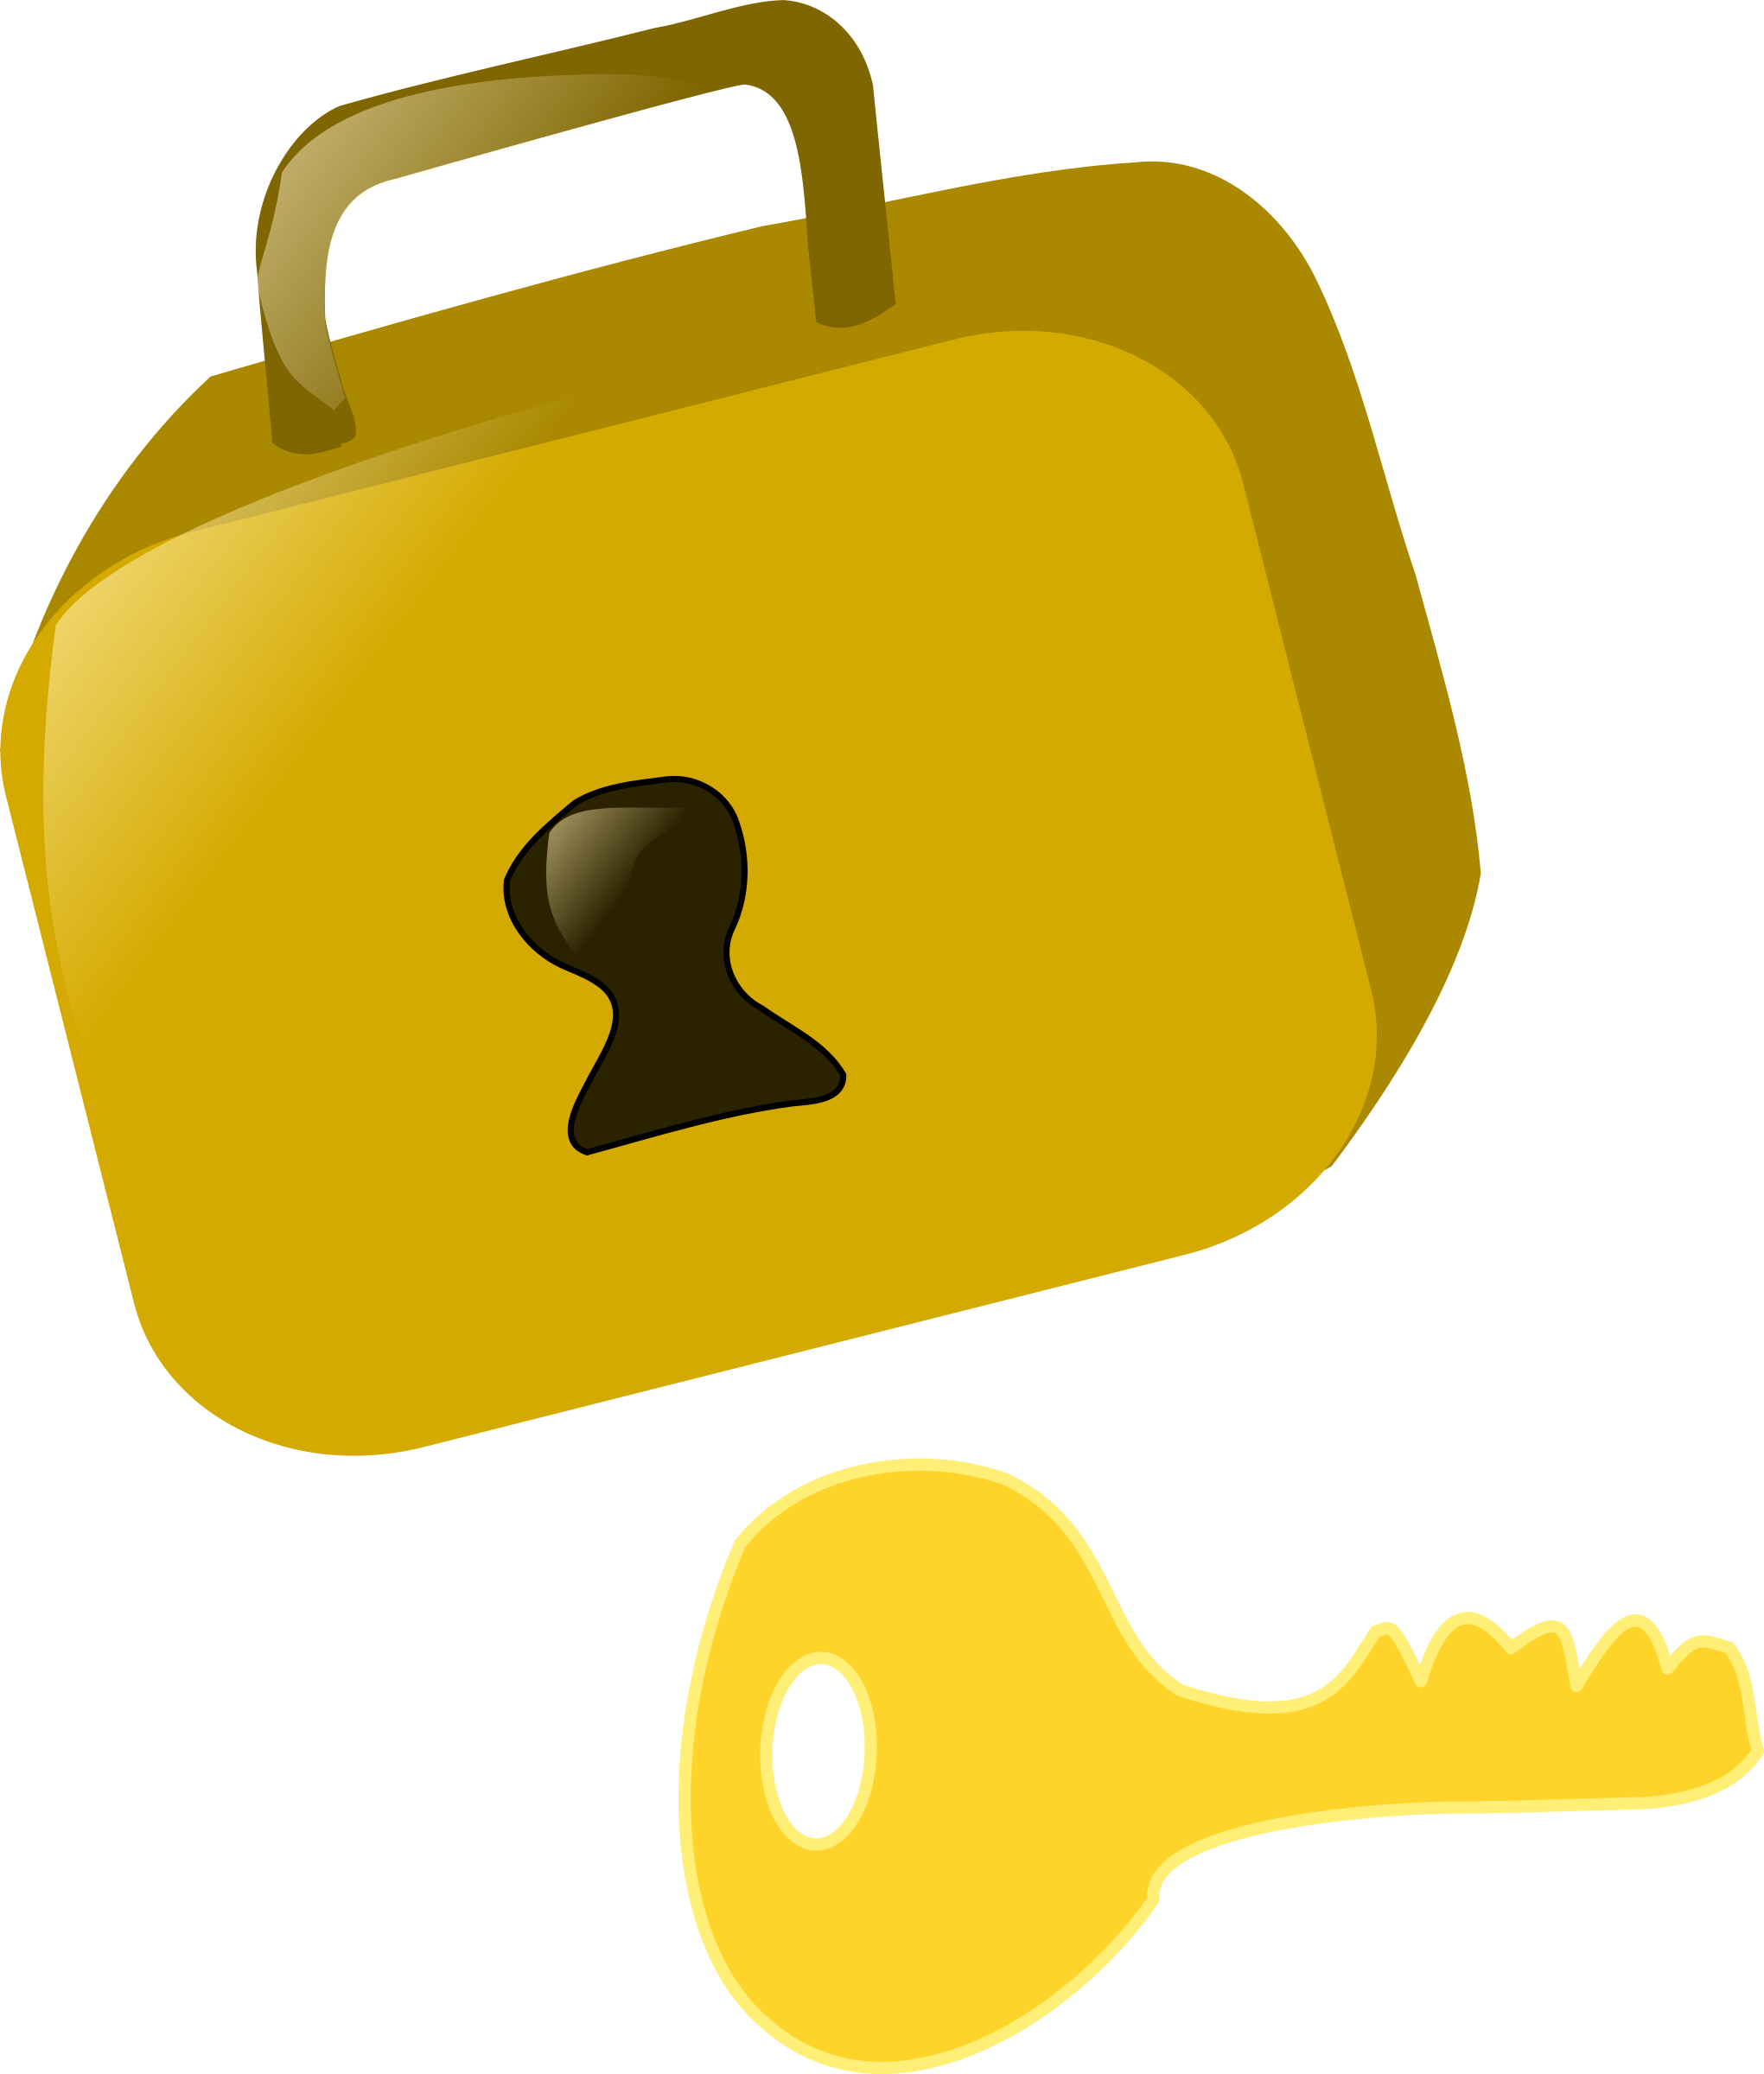 svg library download Big image png. Lock and key clipart